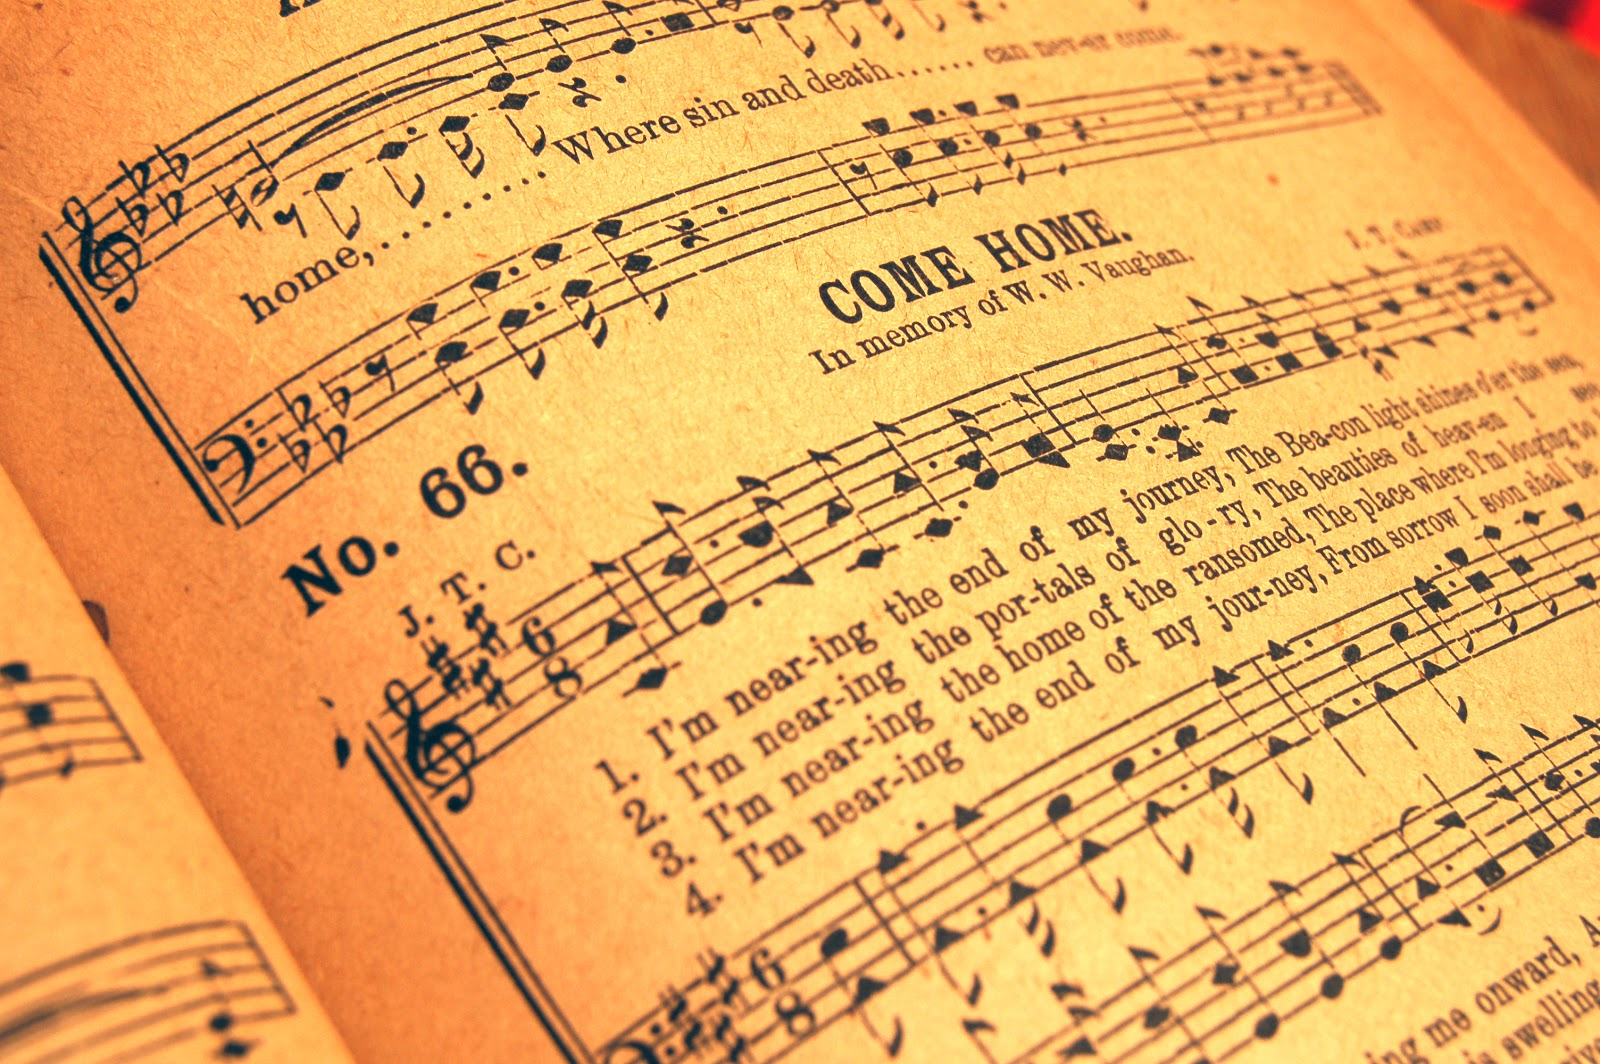 hymnal, power of the hymn,